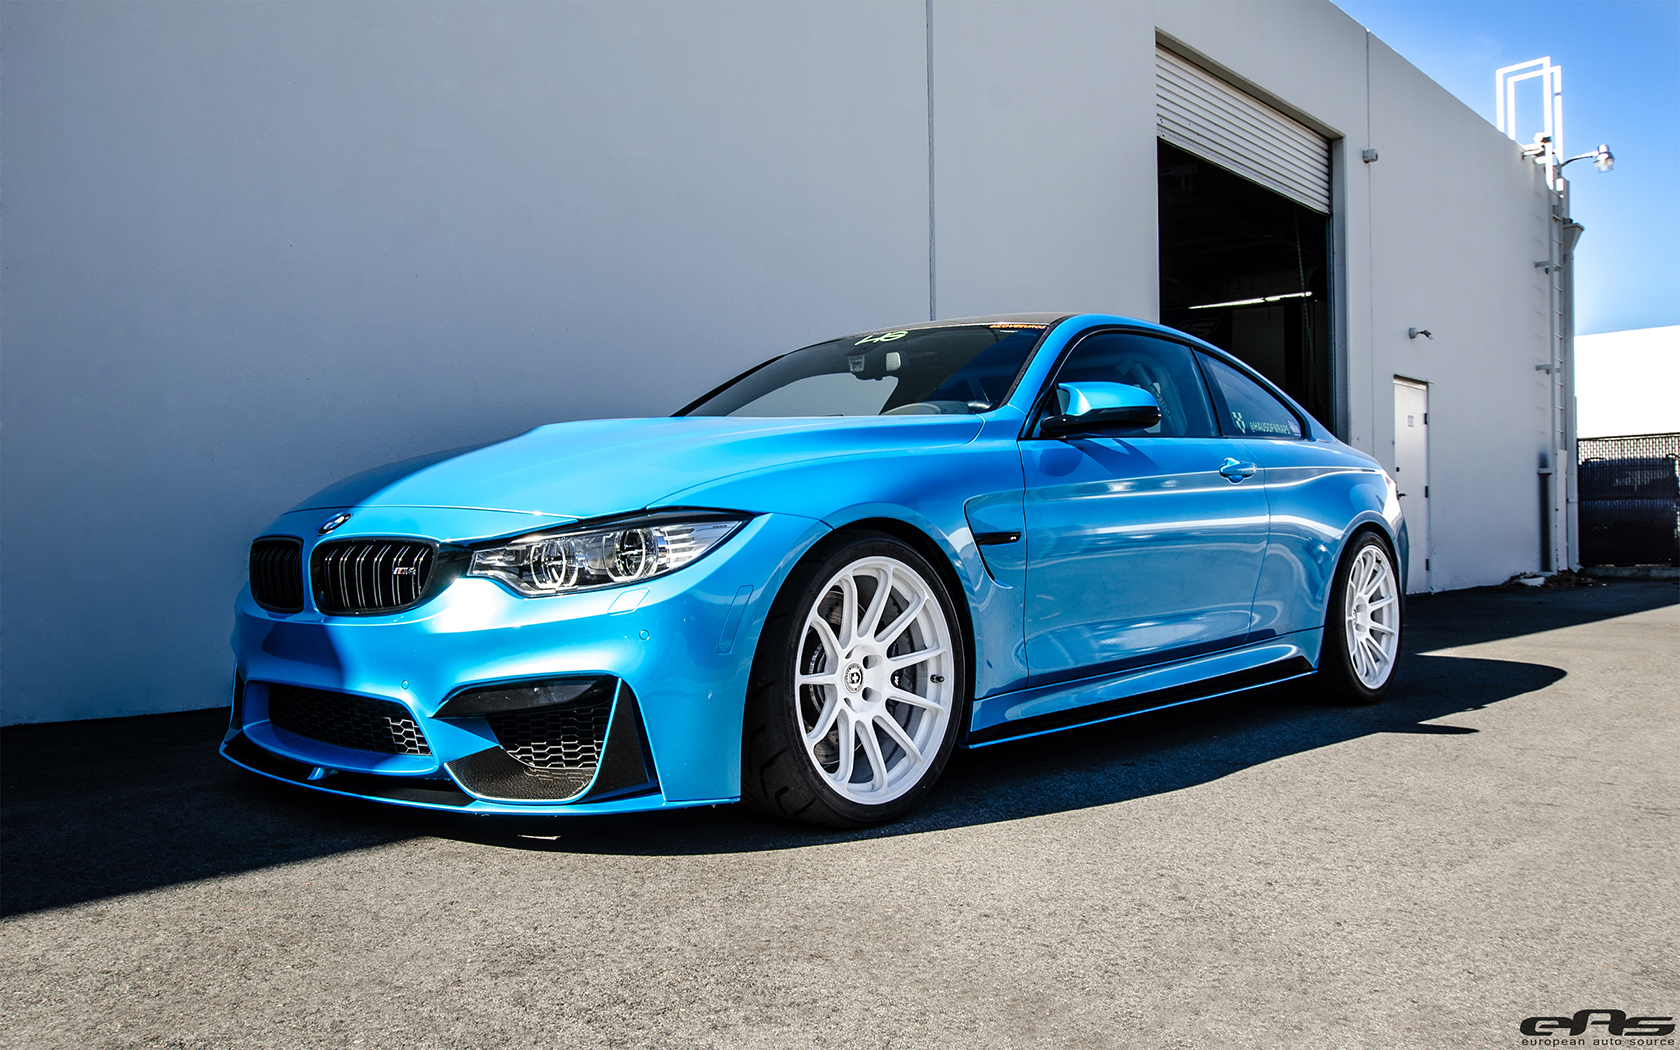 Pearlescent Mexico Blue Bmw F82 M4 Gets Modded